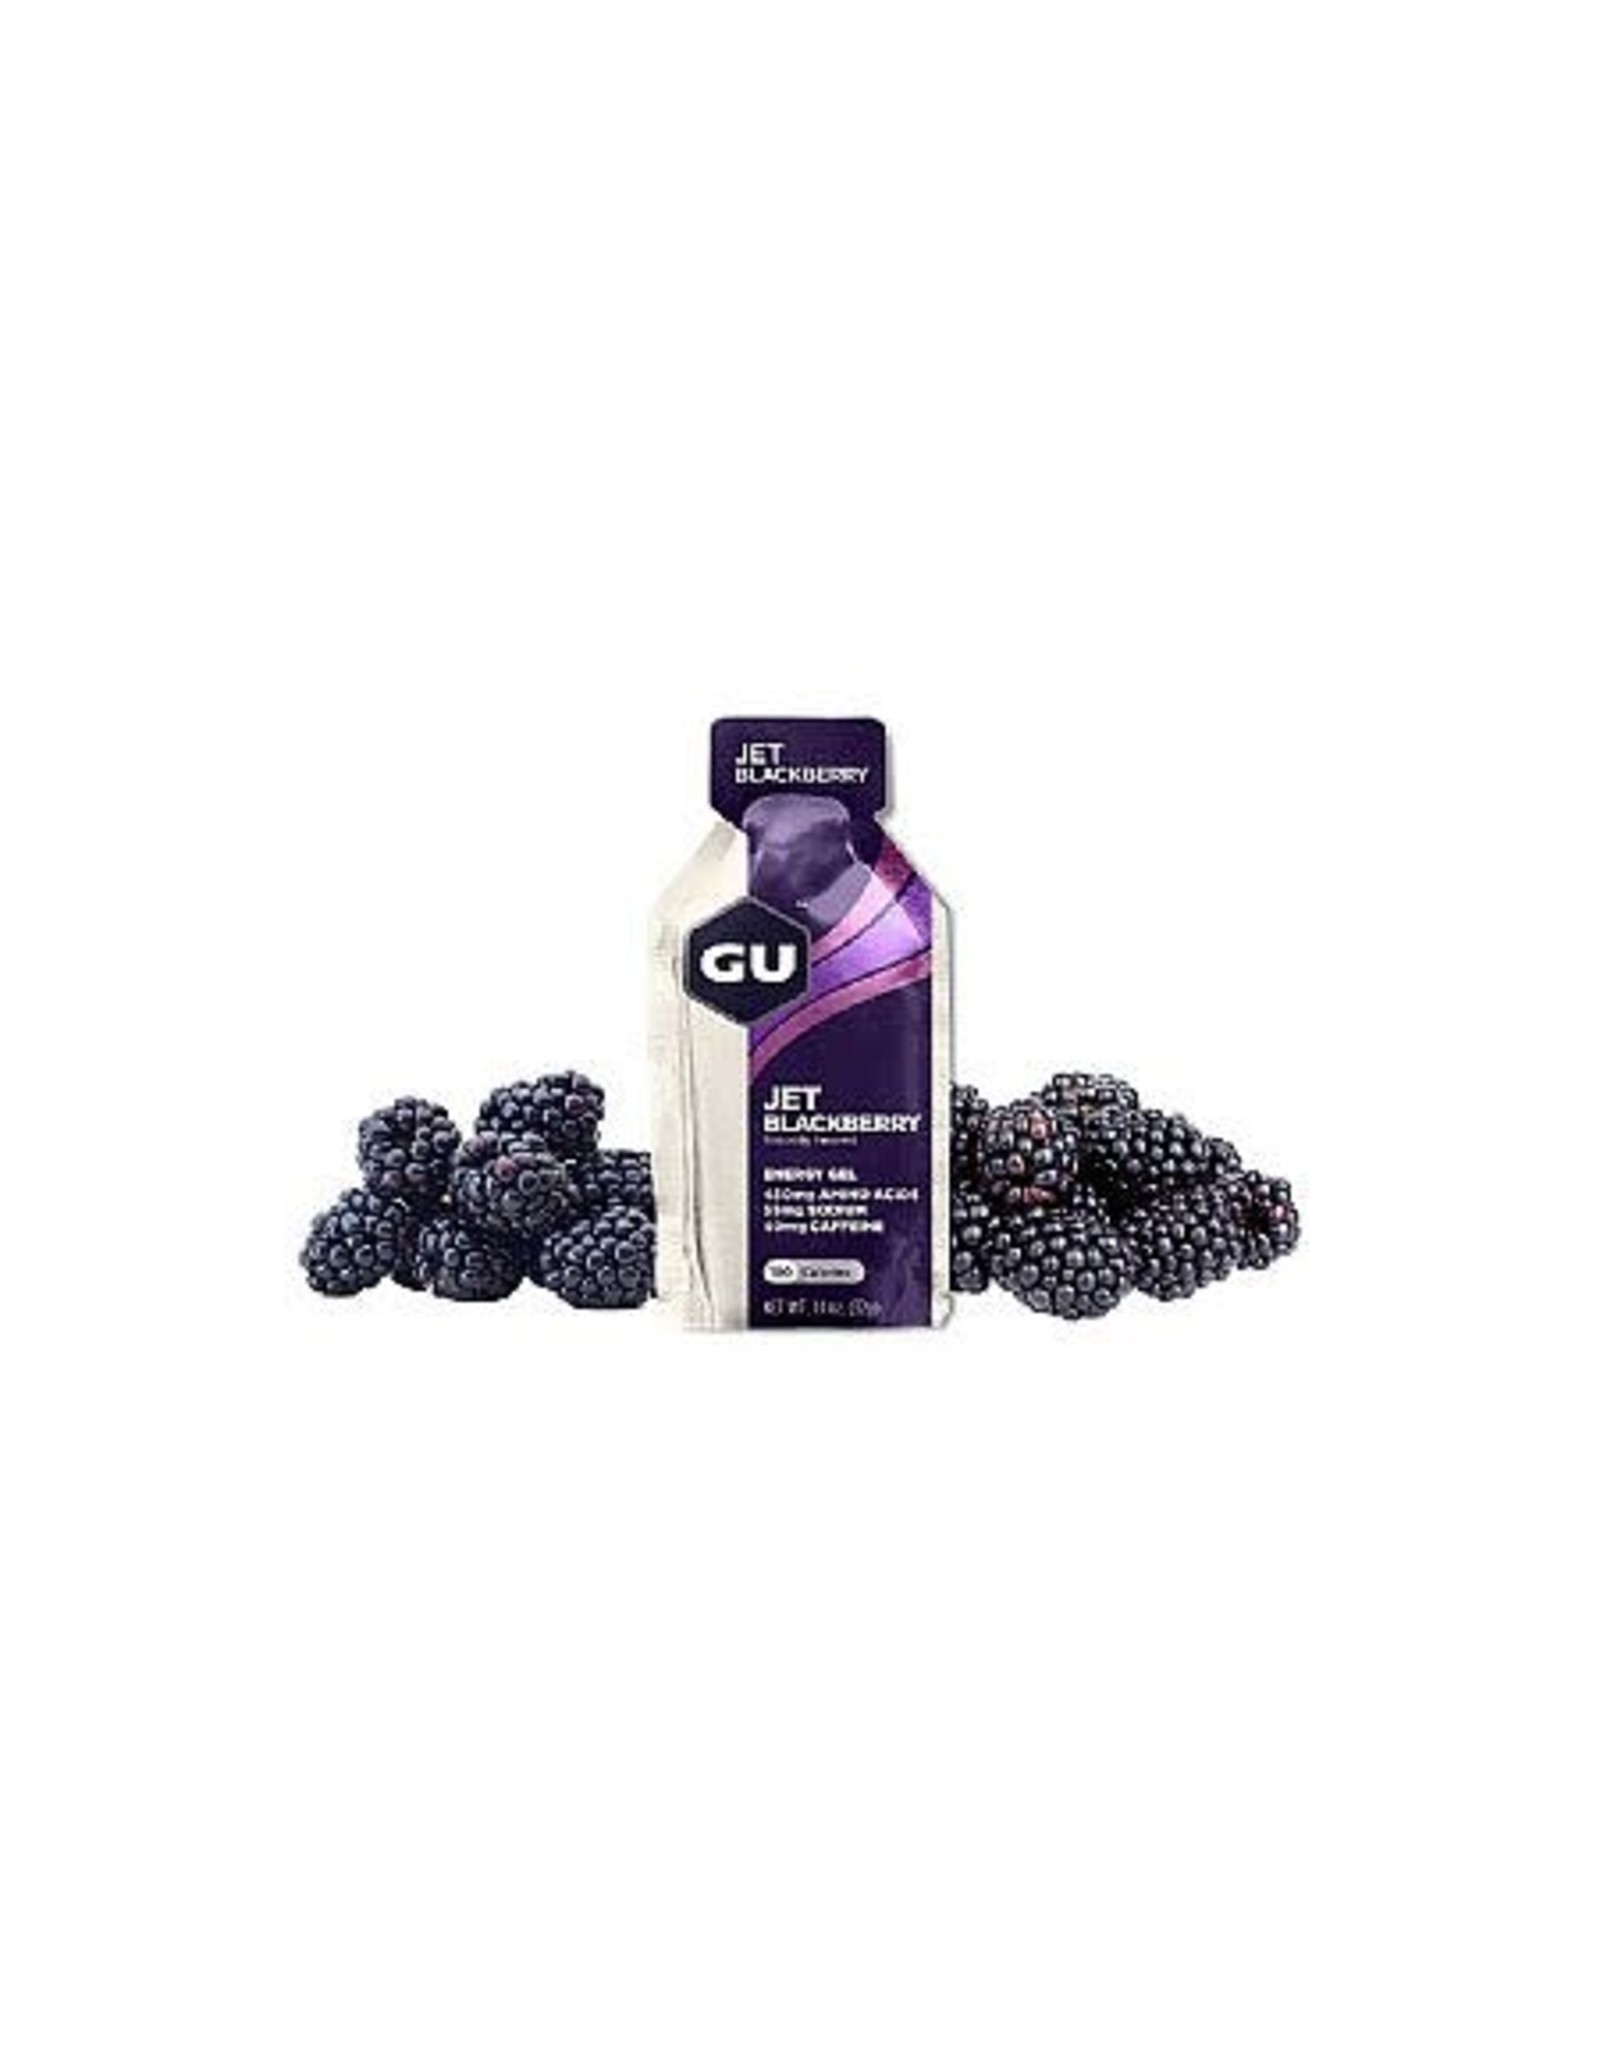 GU Energy Labs GU Energy Gel: Jet Blackberry Box of 24 single